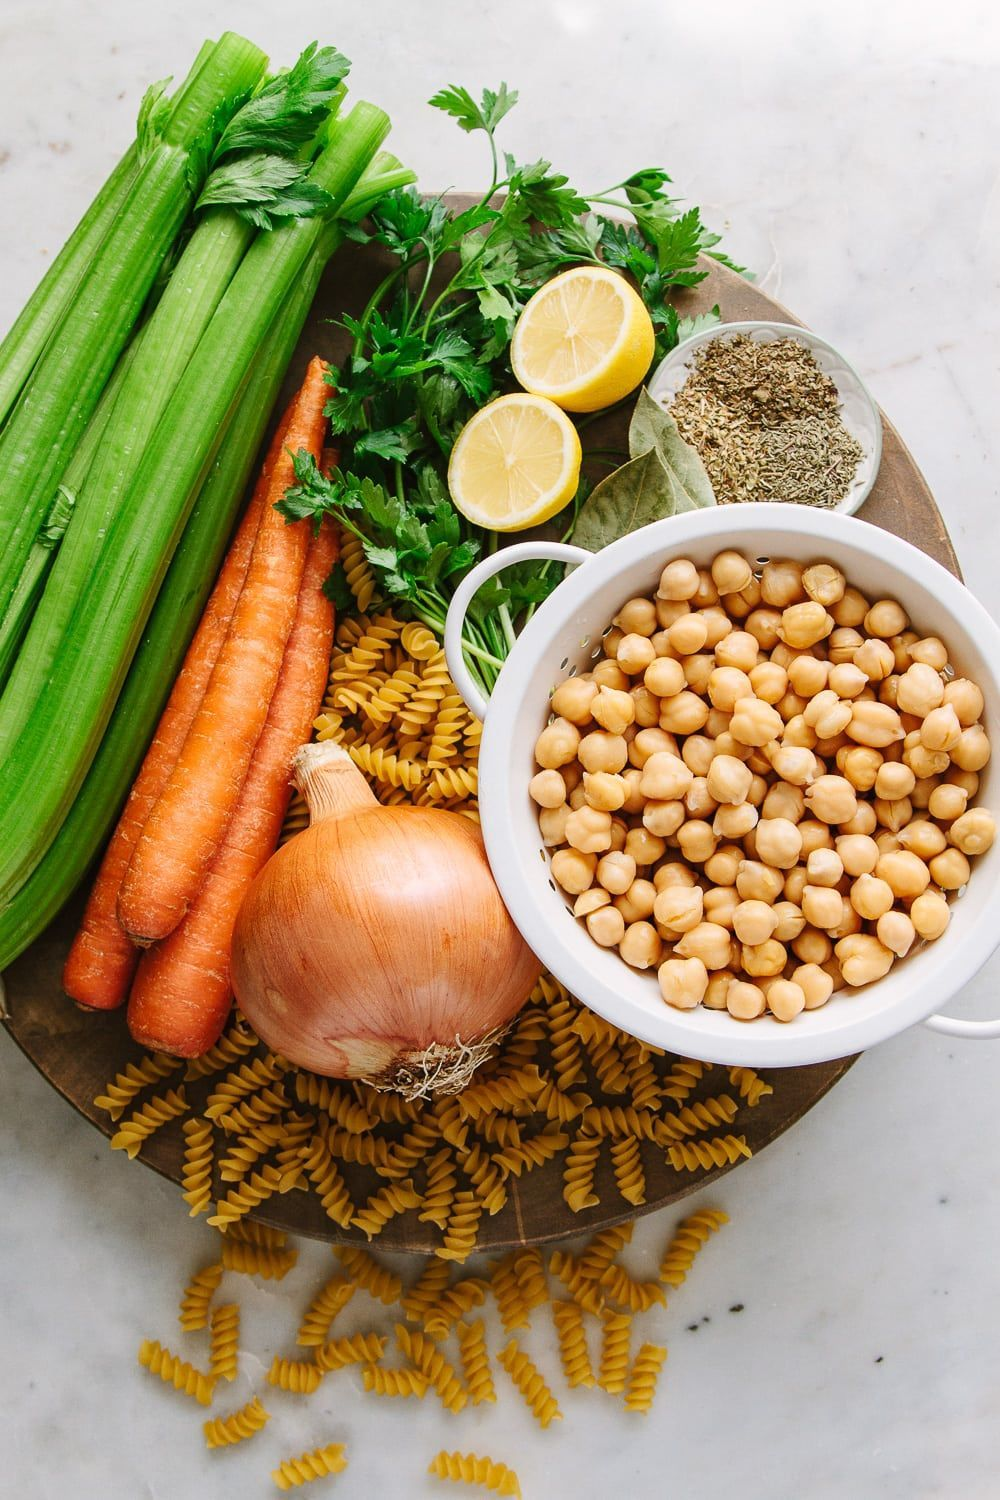 Vegan Chickpea Noodle Soup is loaded with veggies, protein rich chickpeas, hearty pasta & flavorful herbs, and ready in 30 minutes! May I also add that this recipe requires minimal chopping, uses mostly pantry ingredients and is a budget friendly lunch, dinner or meal prep idea. It's sure to be a new healthy favorite for the meal rotation! #chickpeanoodlesoup Vegan Chickpea Noodle Soup is loaded with veggies, protein rich chickpeas, hearty pasta & flavorful herbs, and ready in 30 minutes! May I #chickpeanoodlesoup